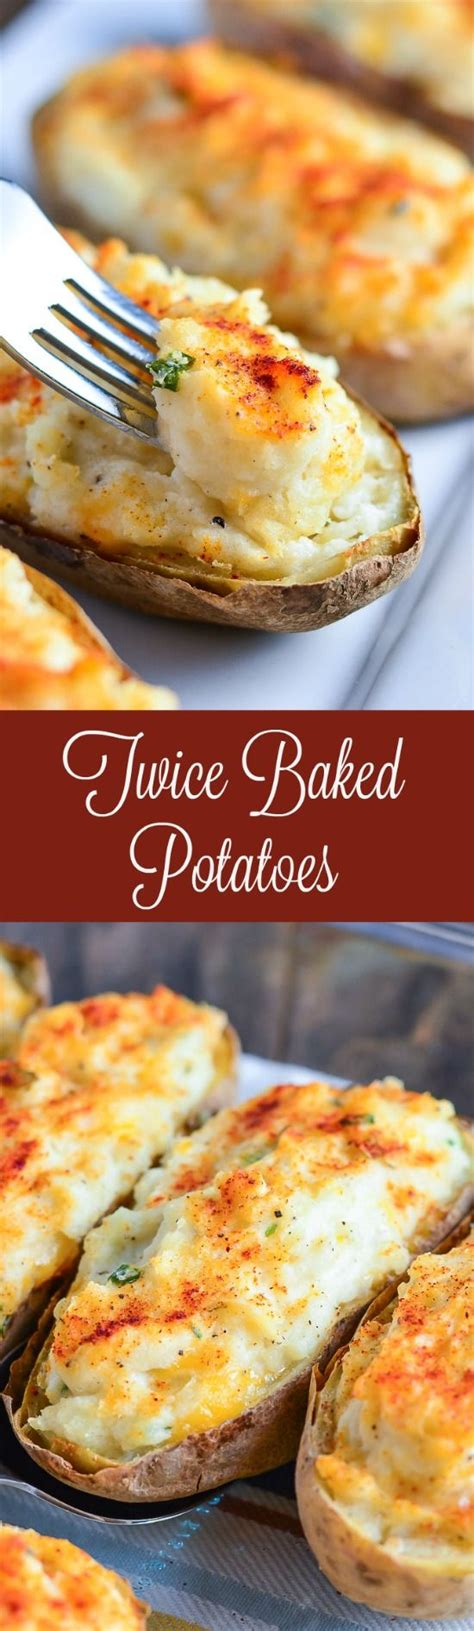 25 best ideas about baked potatoes on pinterest baked potato toppings recipe for baked